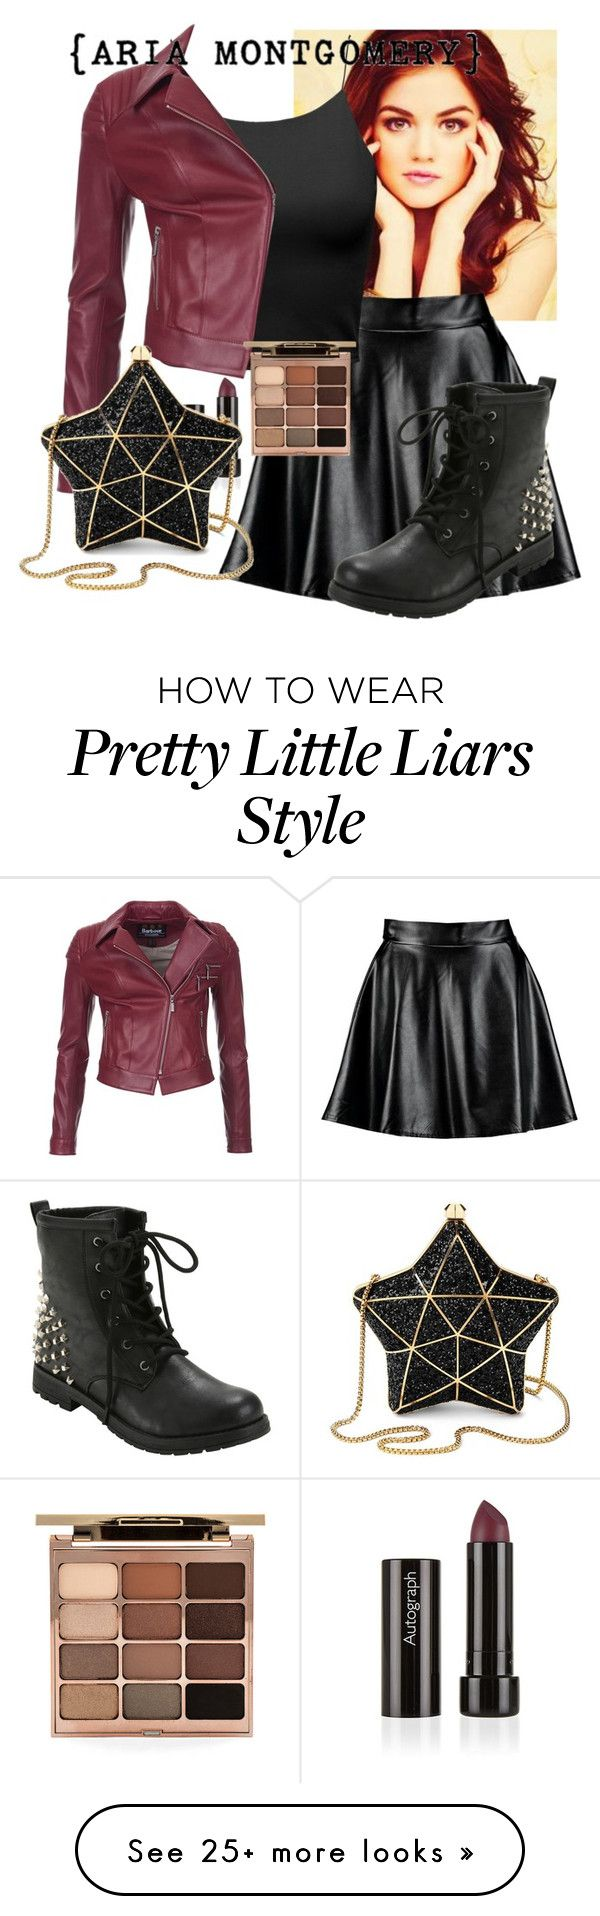 """Aria - Pretty Little Liars"" by redheadflash on Polyvore featuring Boohoo, Barbour International, Aspinal of London and Stila"